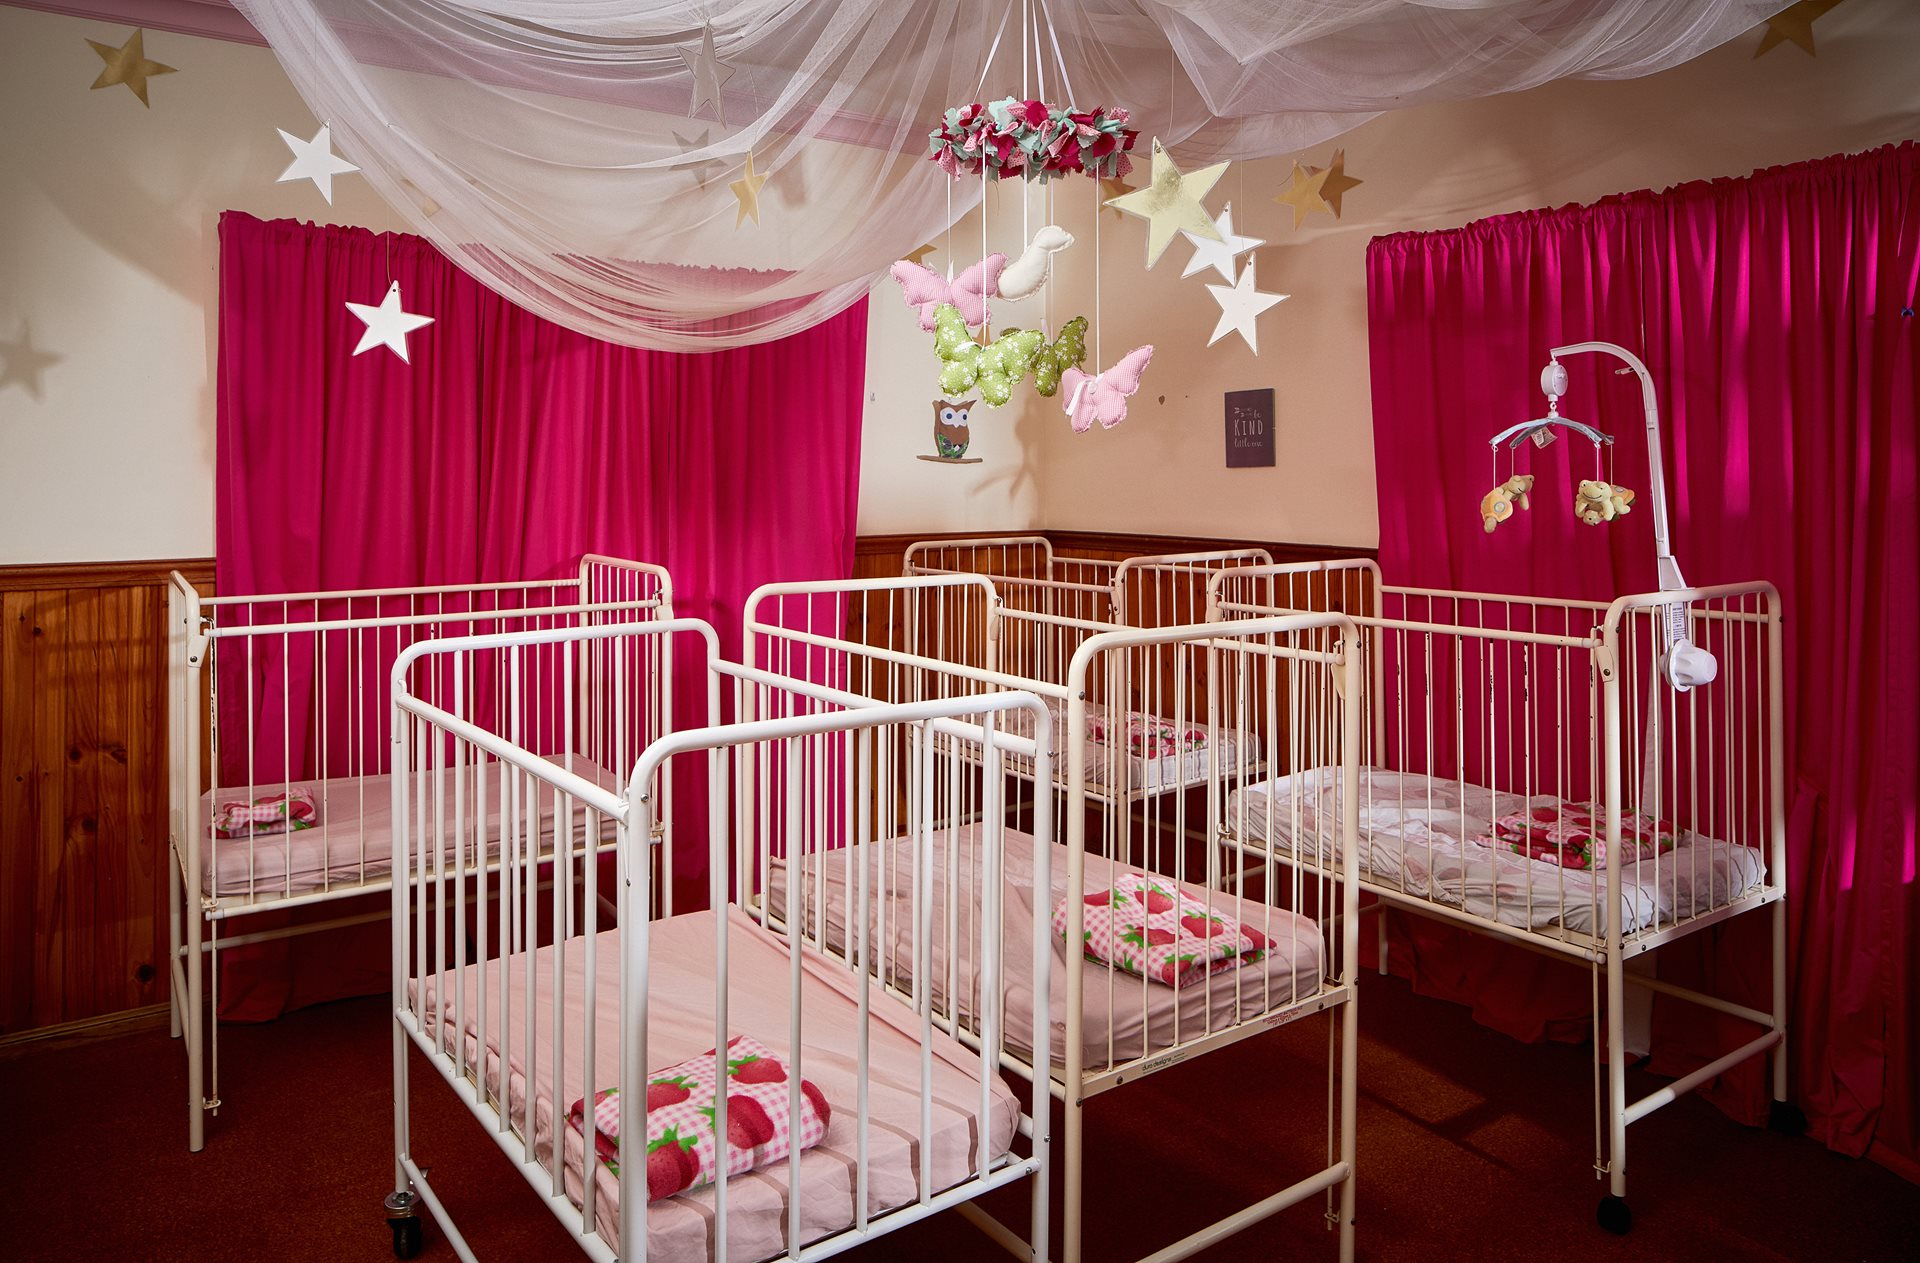 Nursery room at child care centre with cots and mobiles